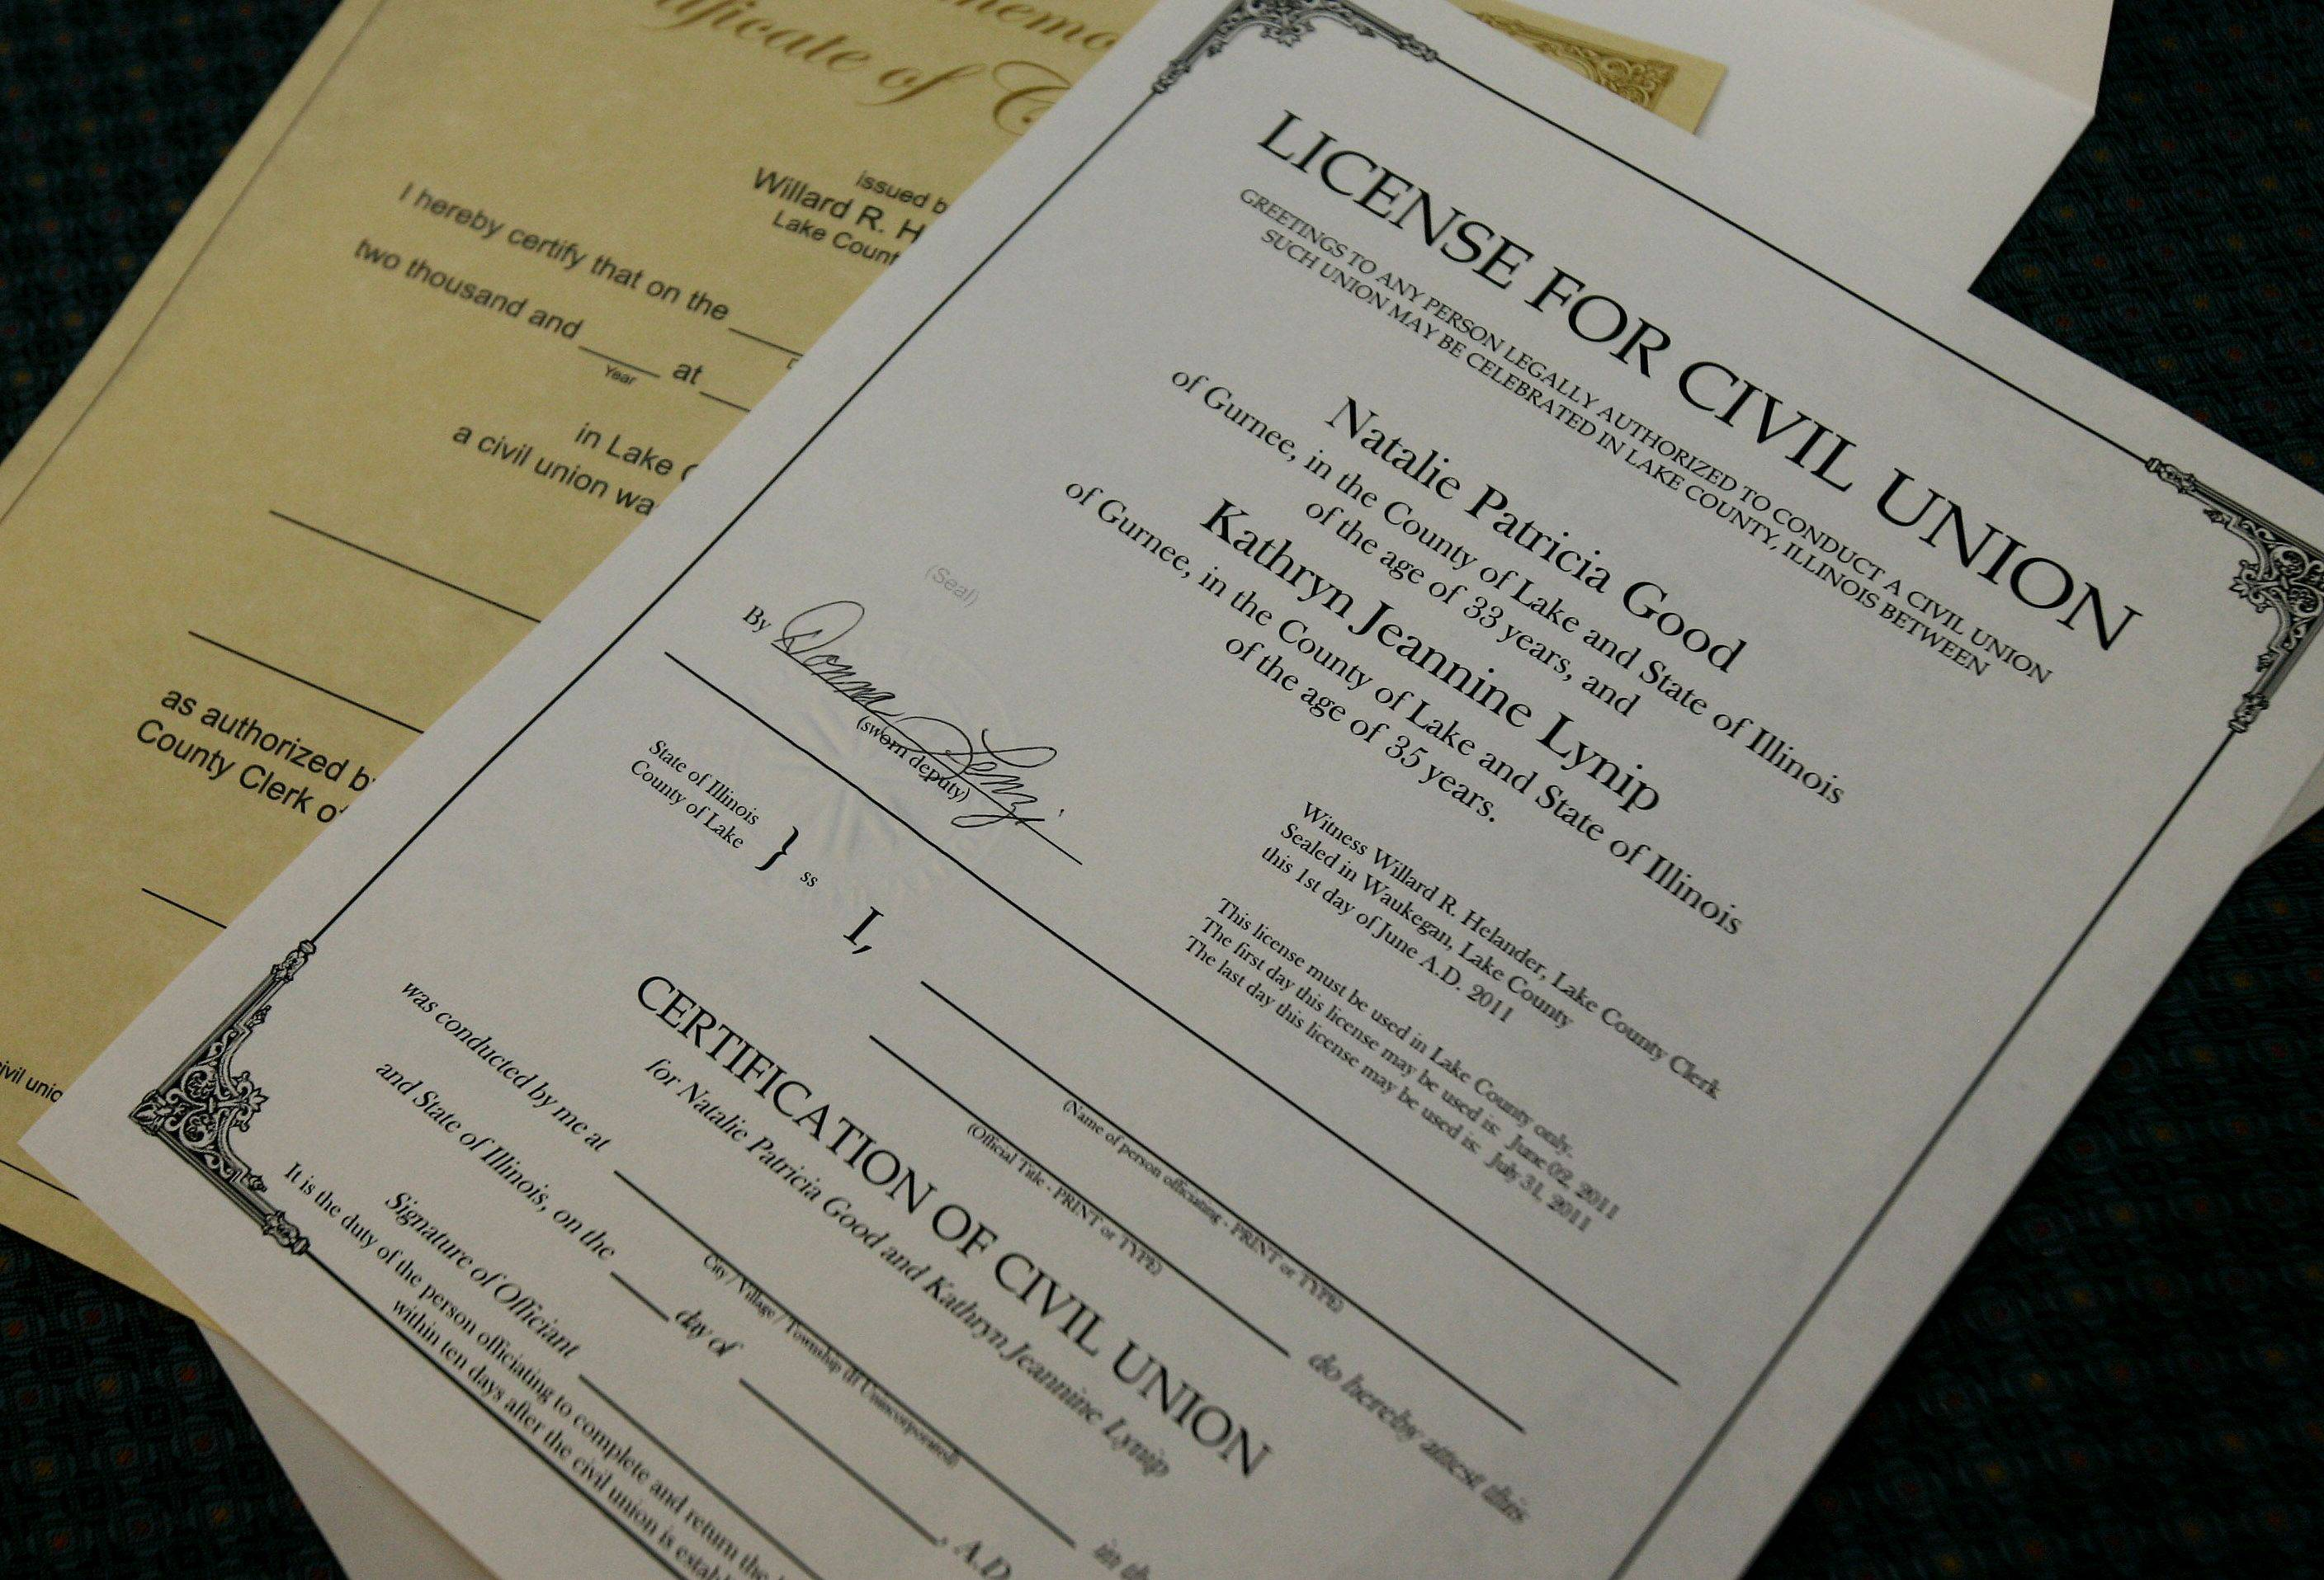 Couples file for civil union licenses Wednesday at the Lake County Clerk's office in Waukegan.